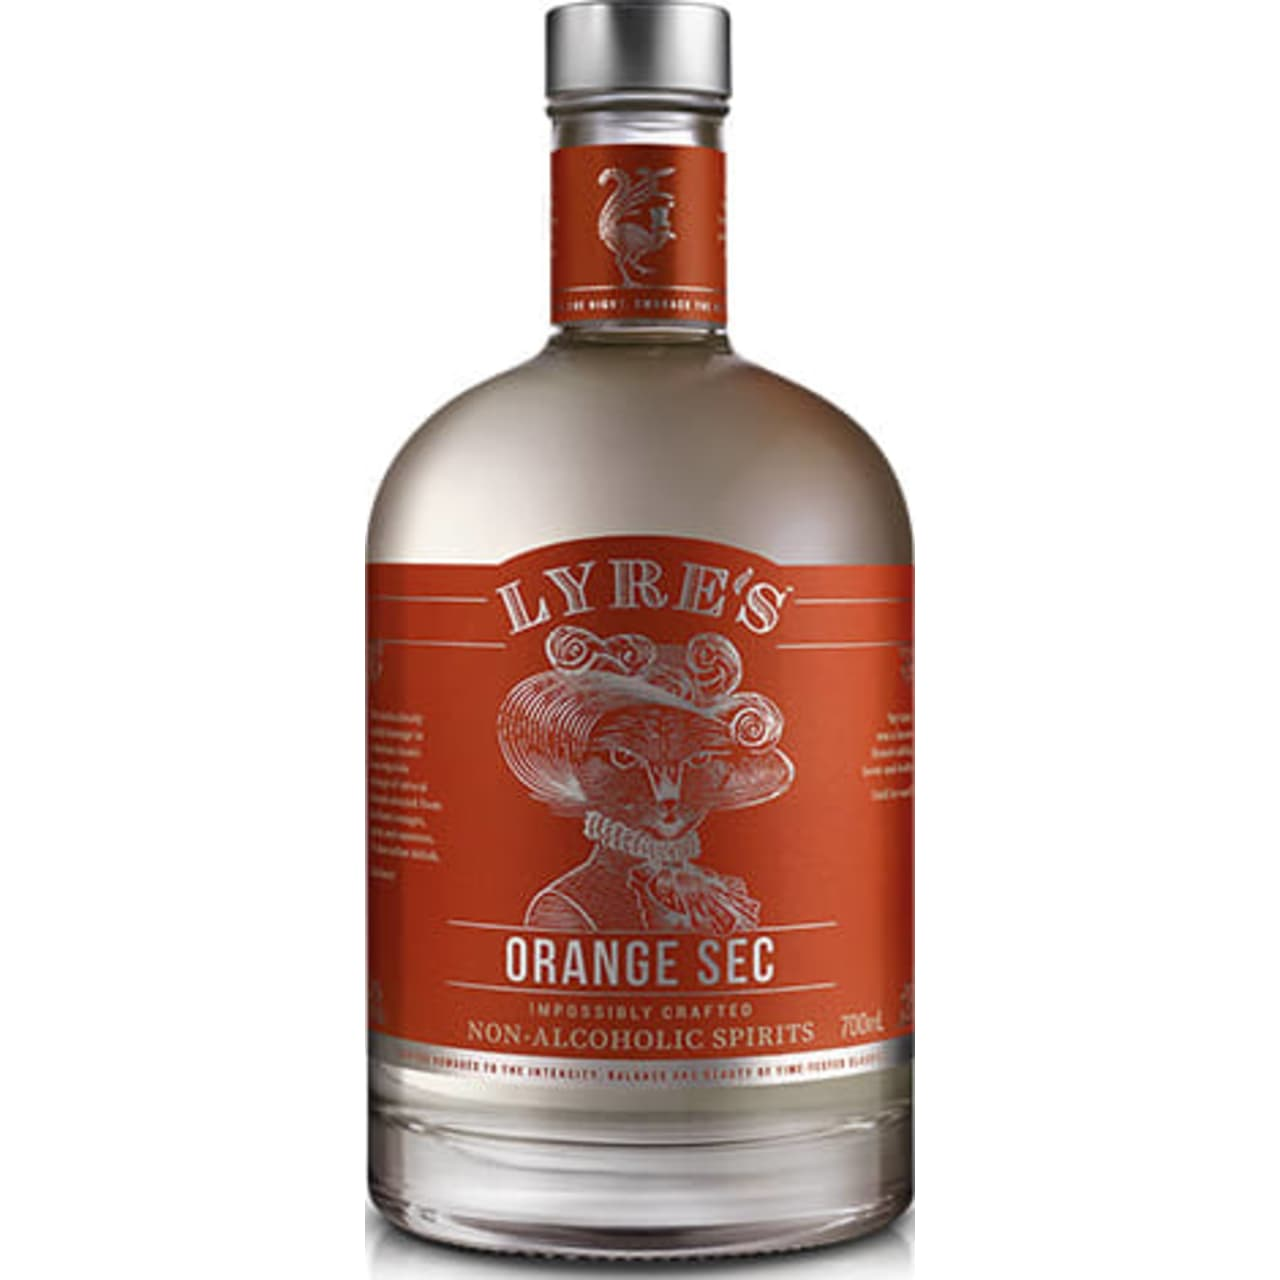 Product Image - Lyres Non Alcoholic Orange Sec